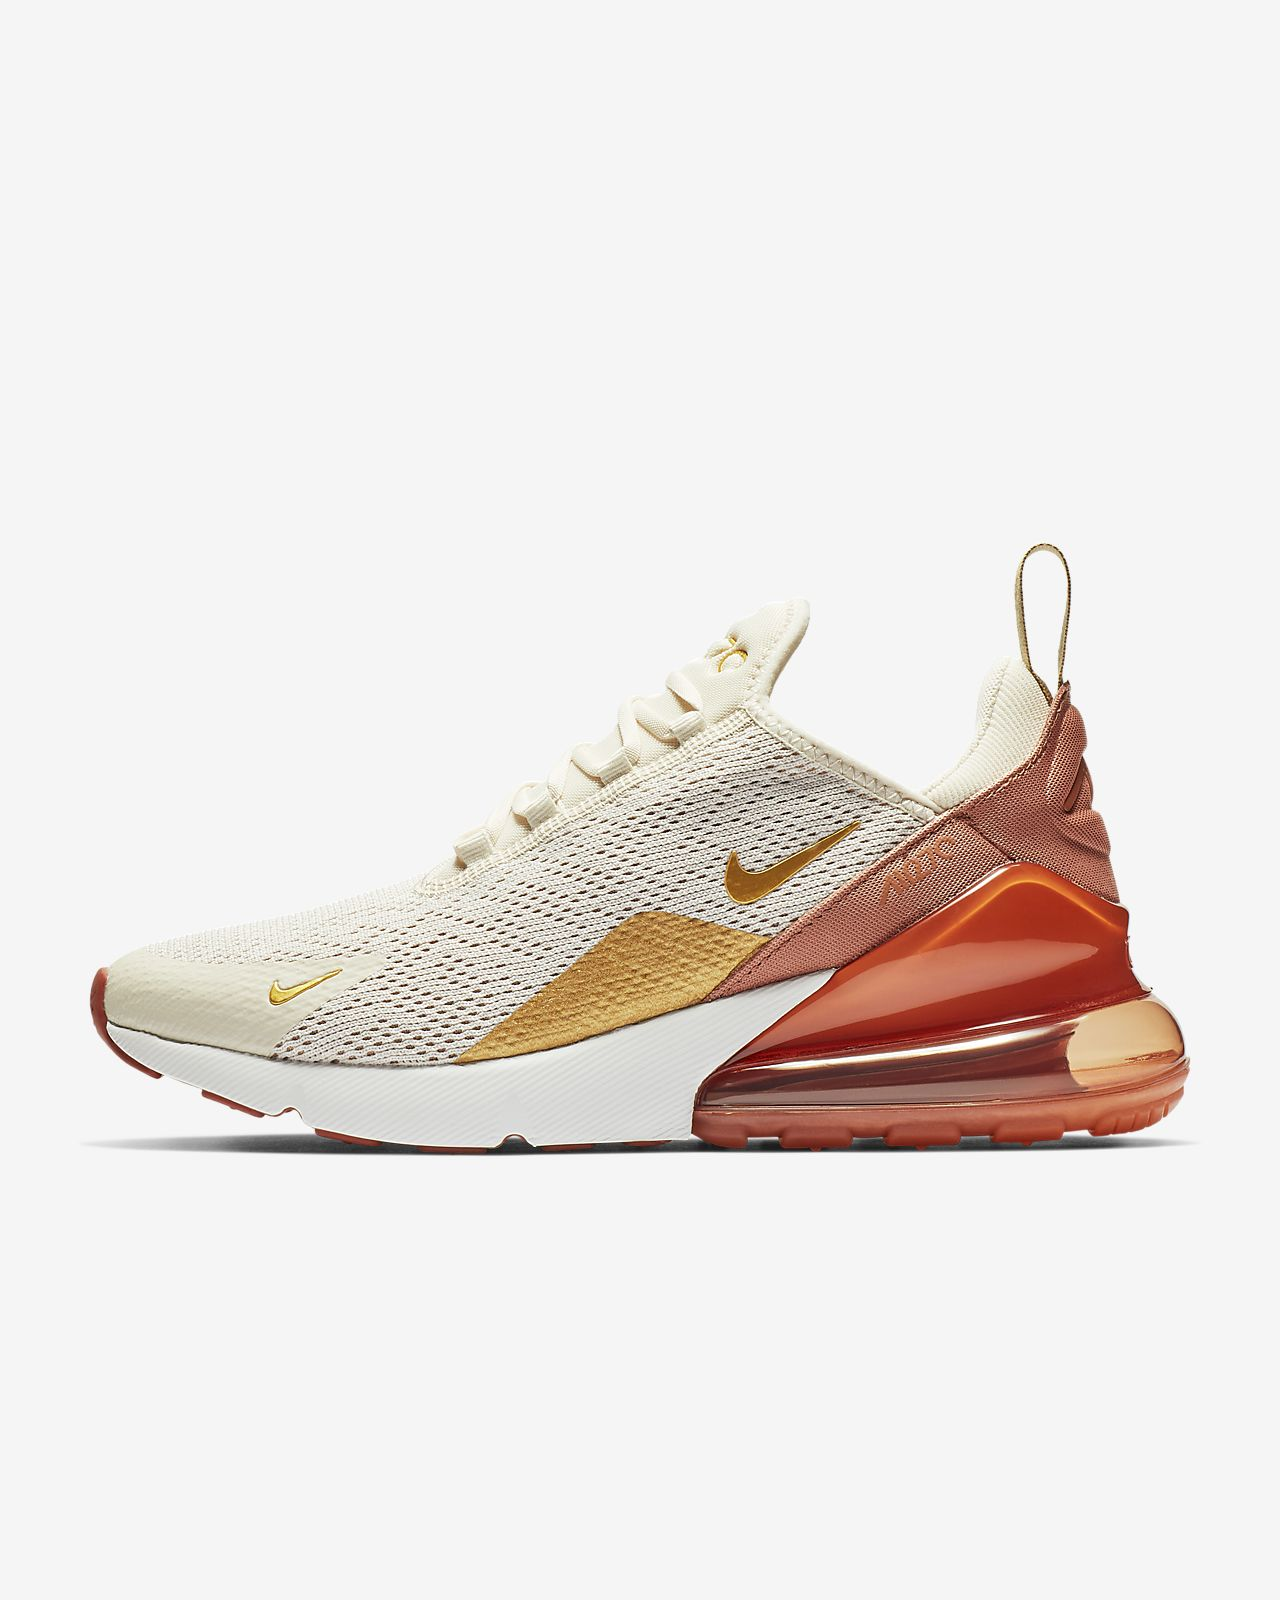 new arrival a32ad 6205c ... Nike Air Max 270 Womens Shoe